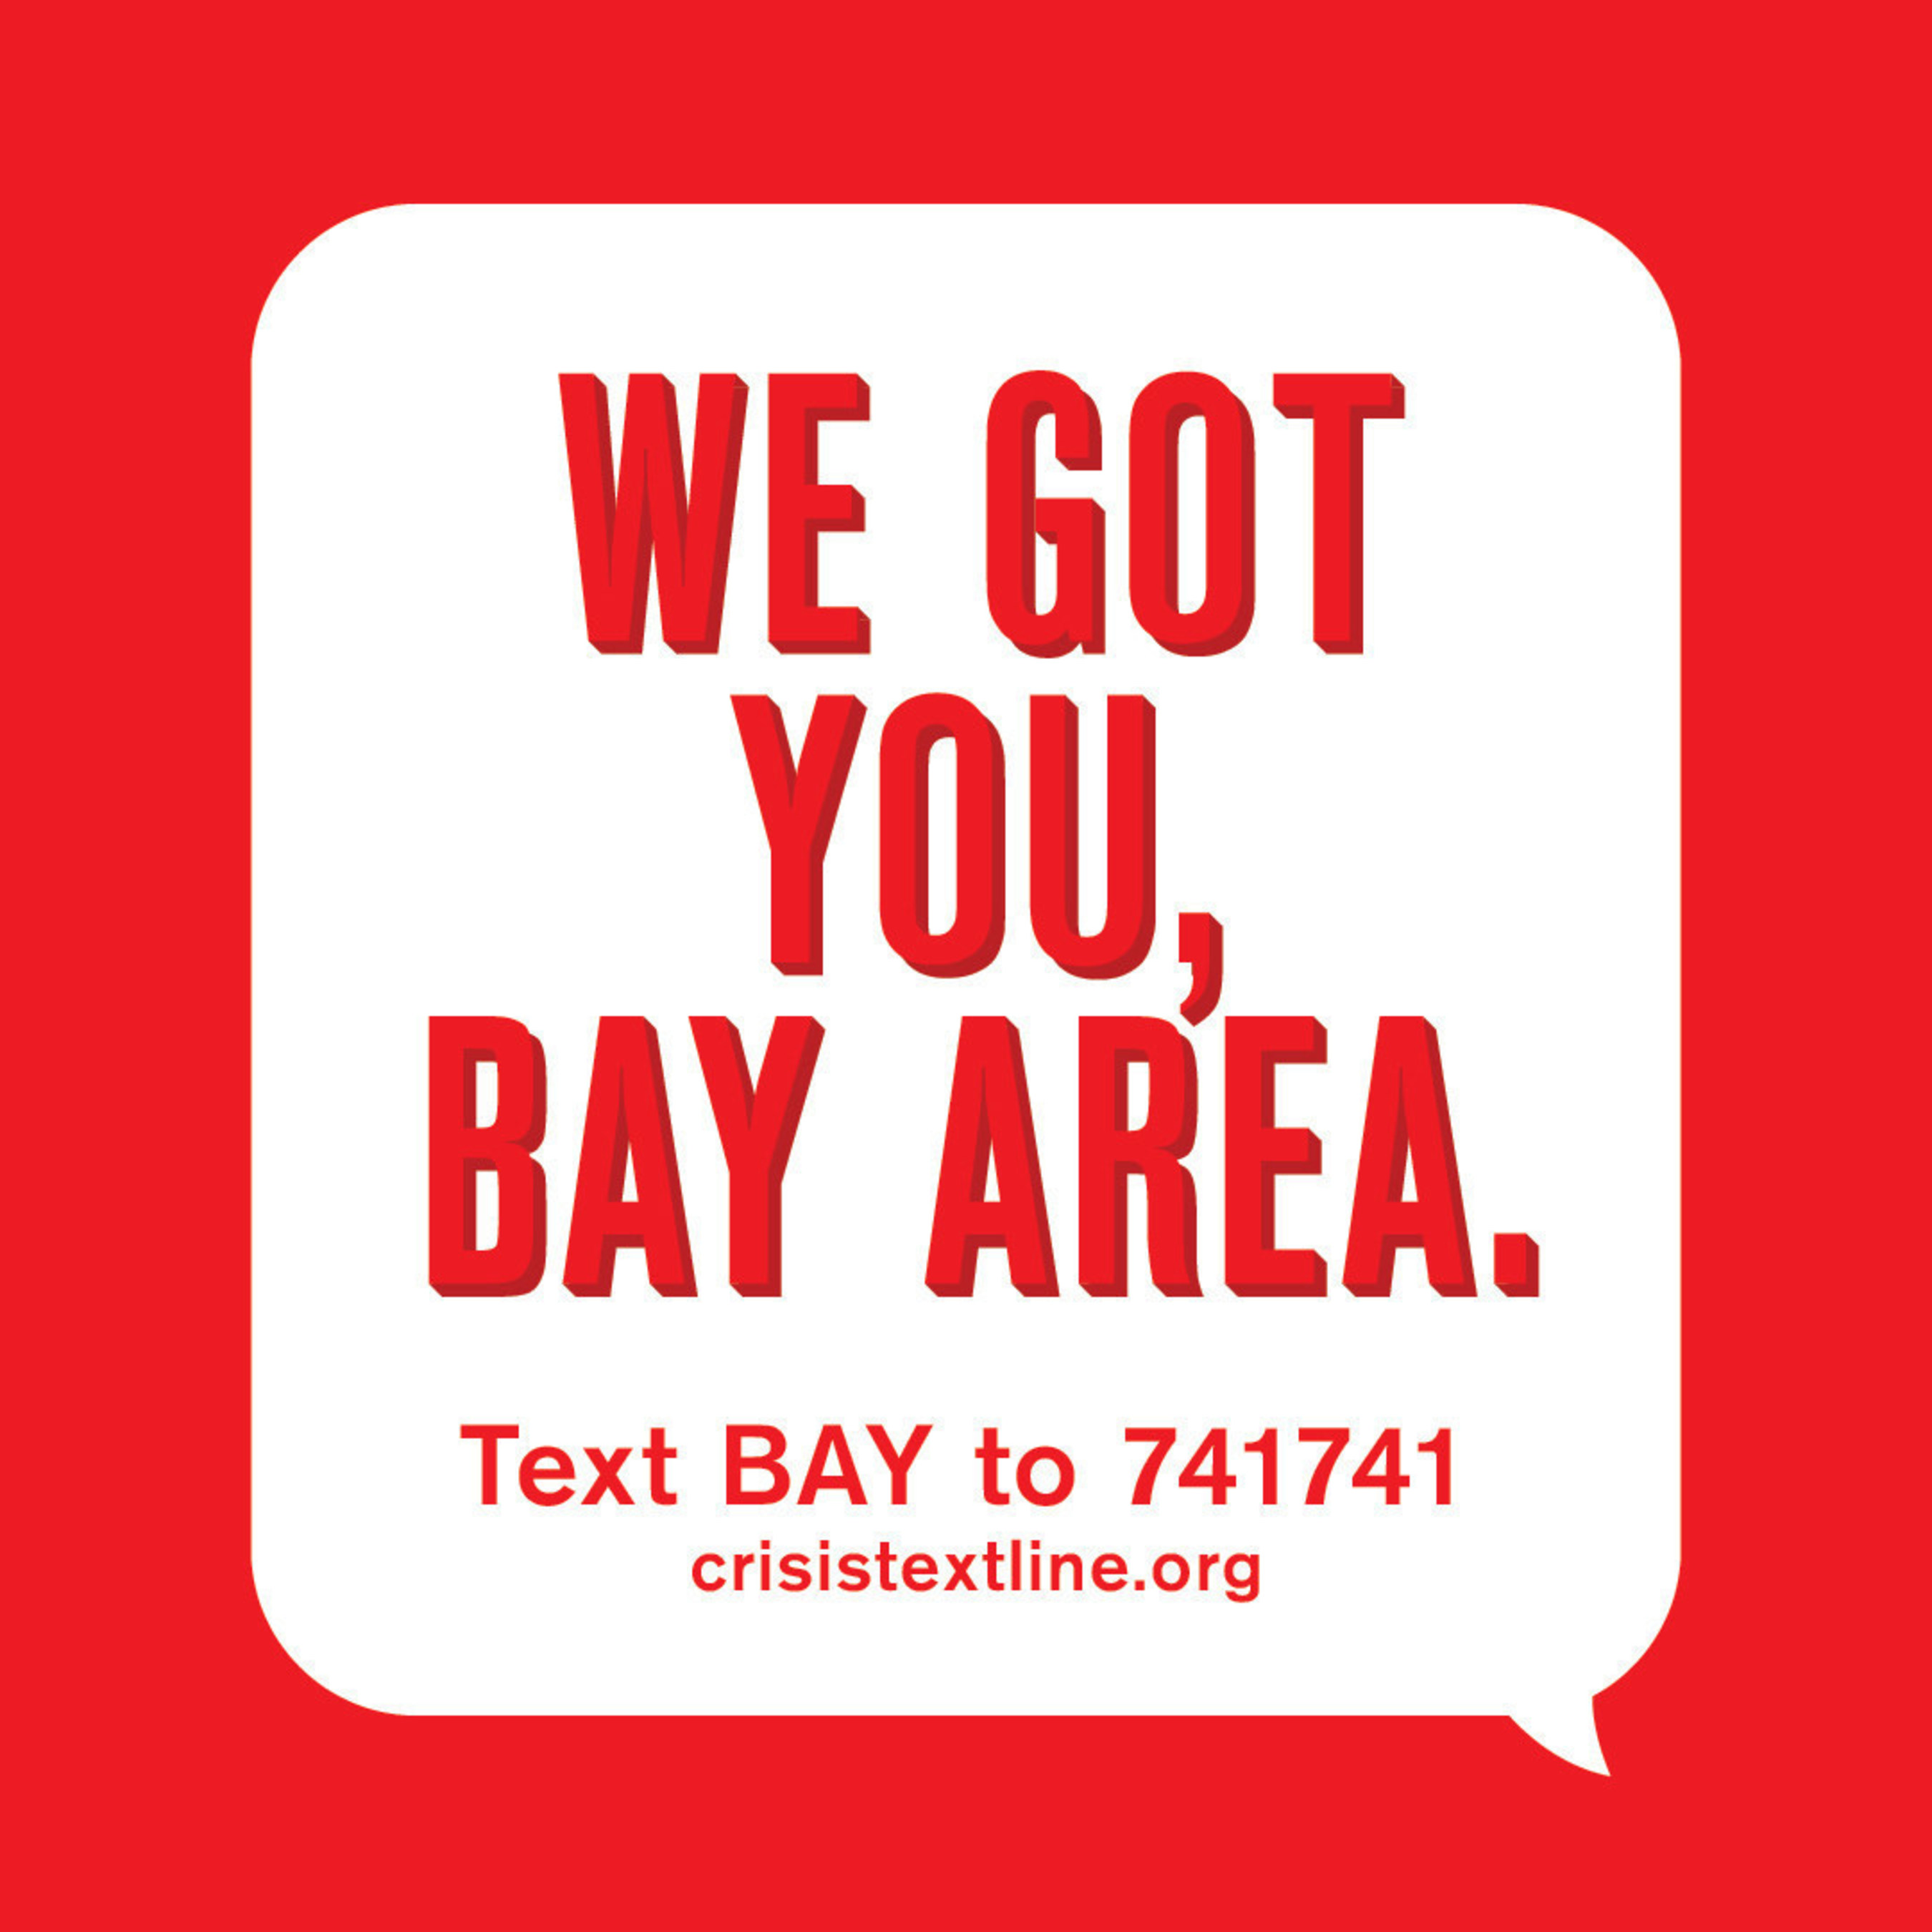 Help is a just a text away. Crisis Text Line launches an array of partnerships in the Bay Area.